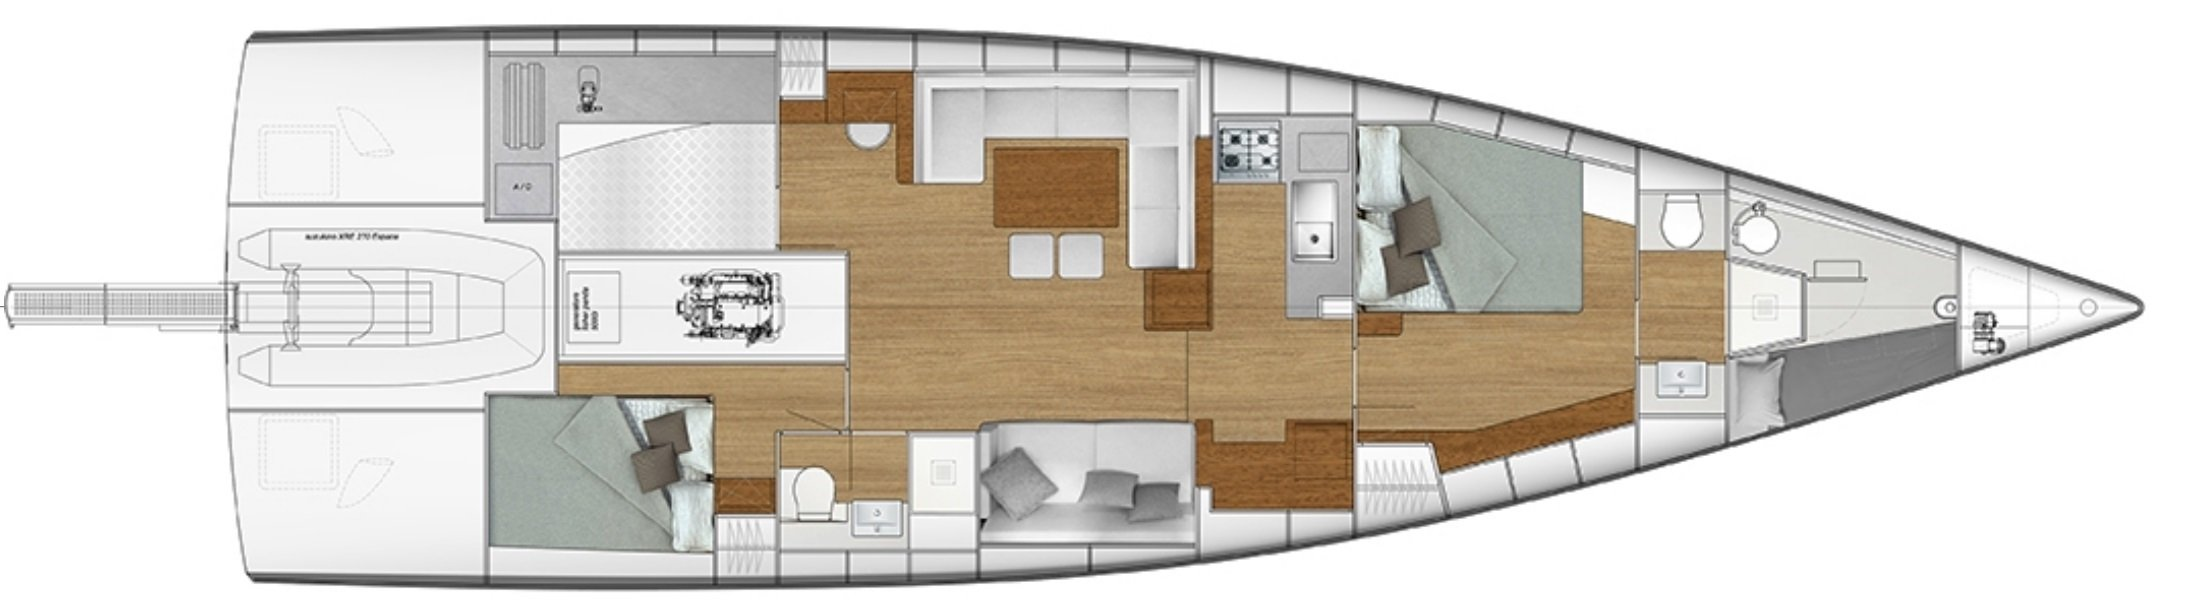 Vismara V56 Mills 2-cabin interior layout plan